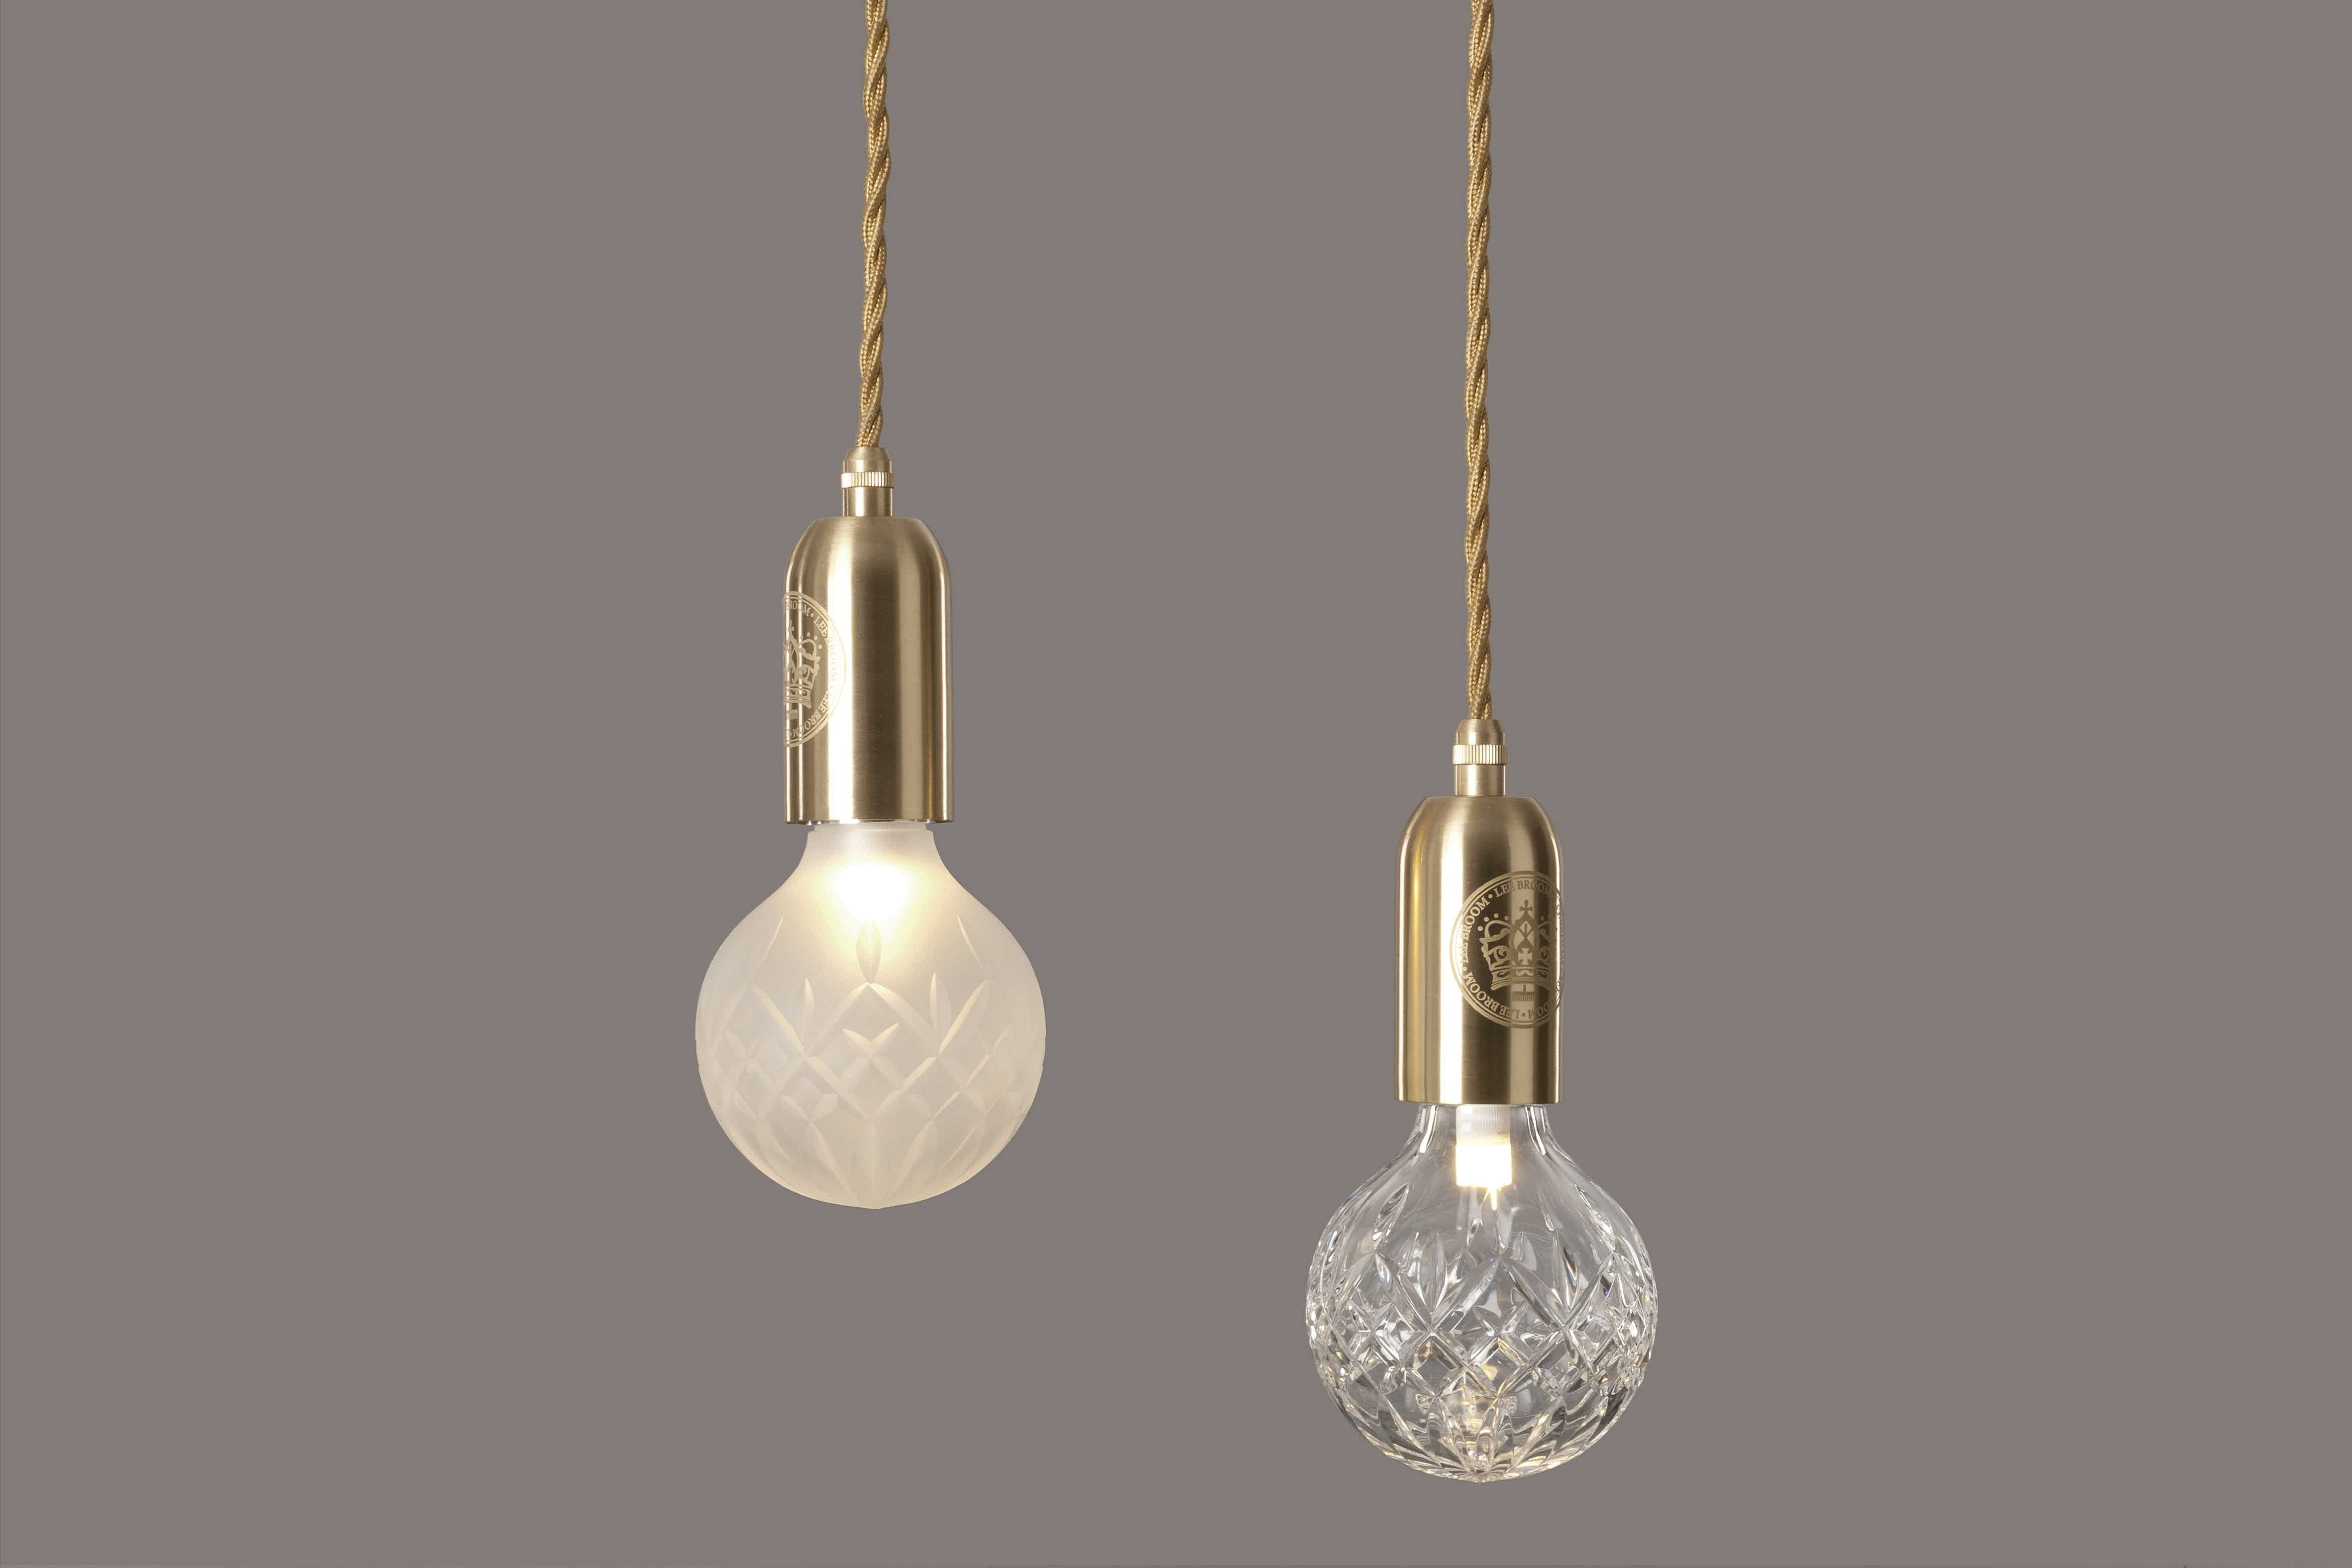 Crystal Bulb Pendant By Lee Broom Now Available At Haute Living Pendant Lamp Pendant Light Crystal Lighting